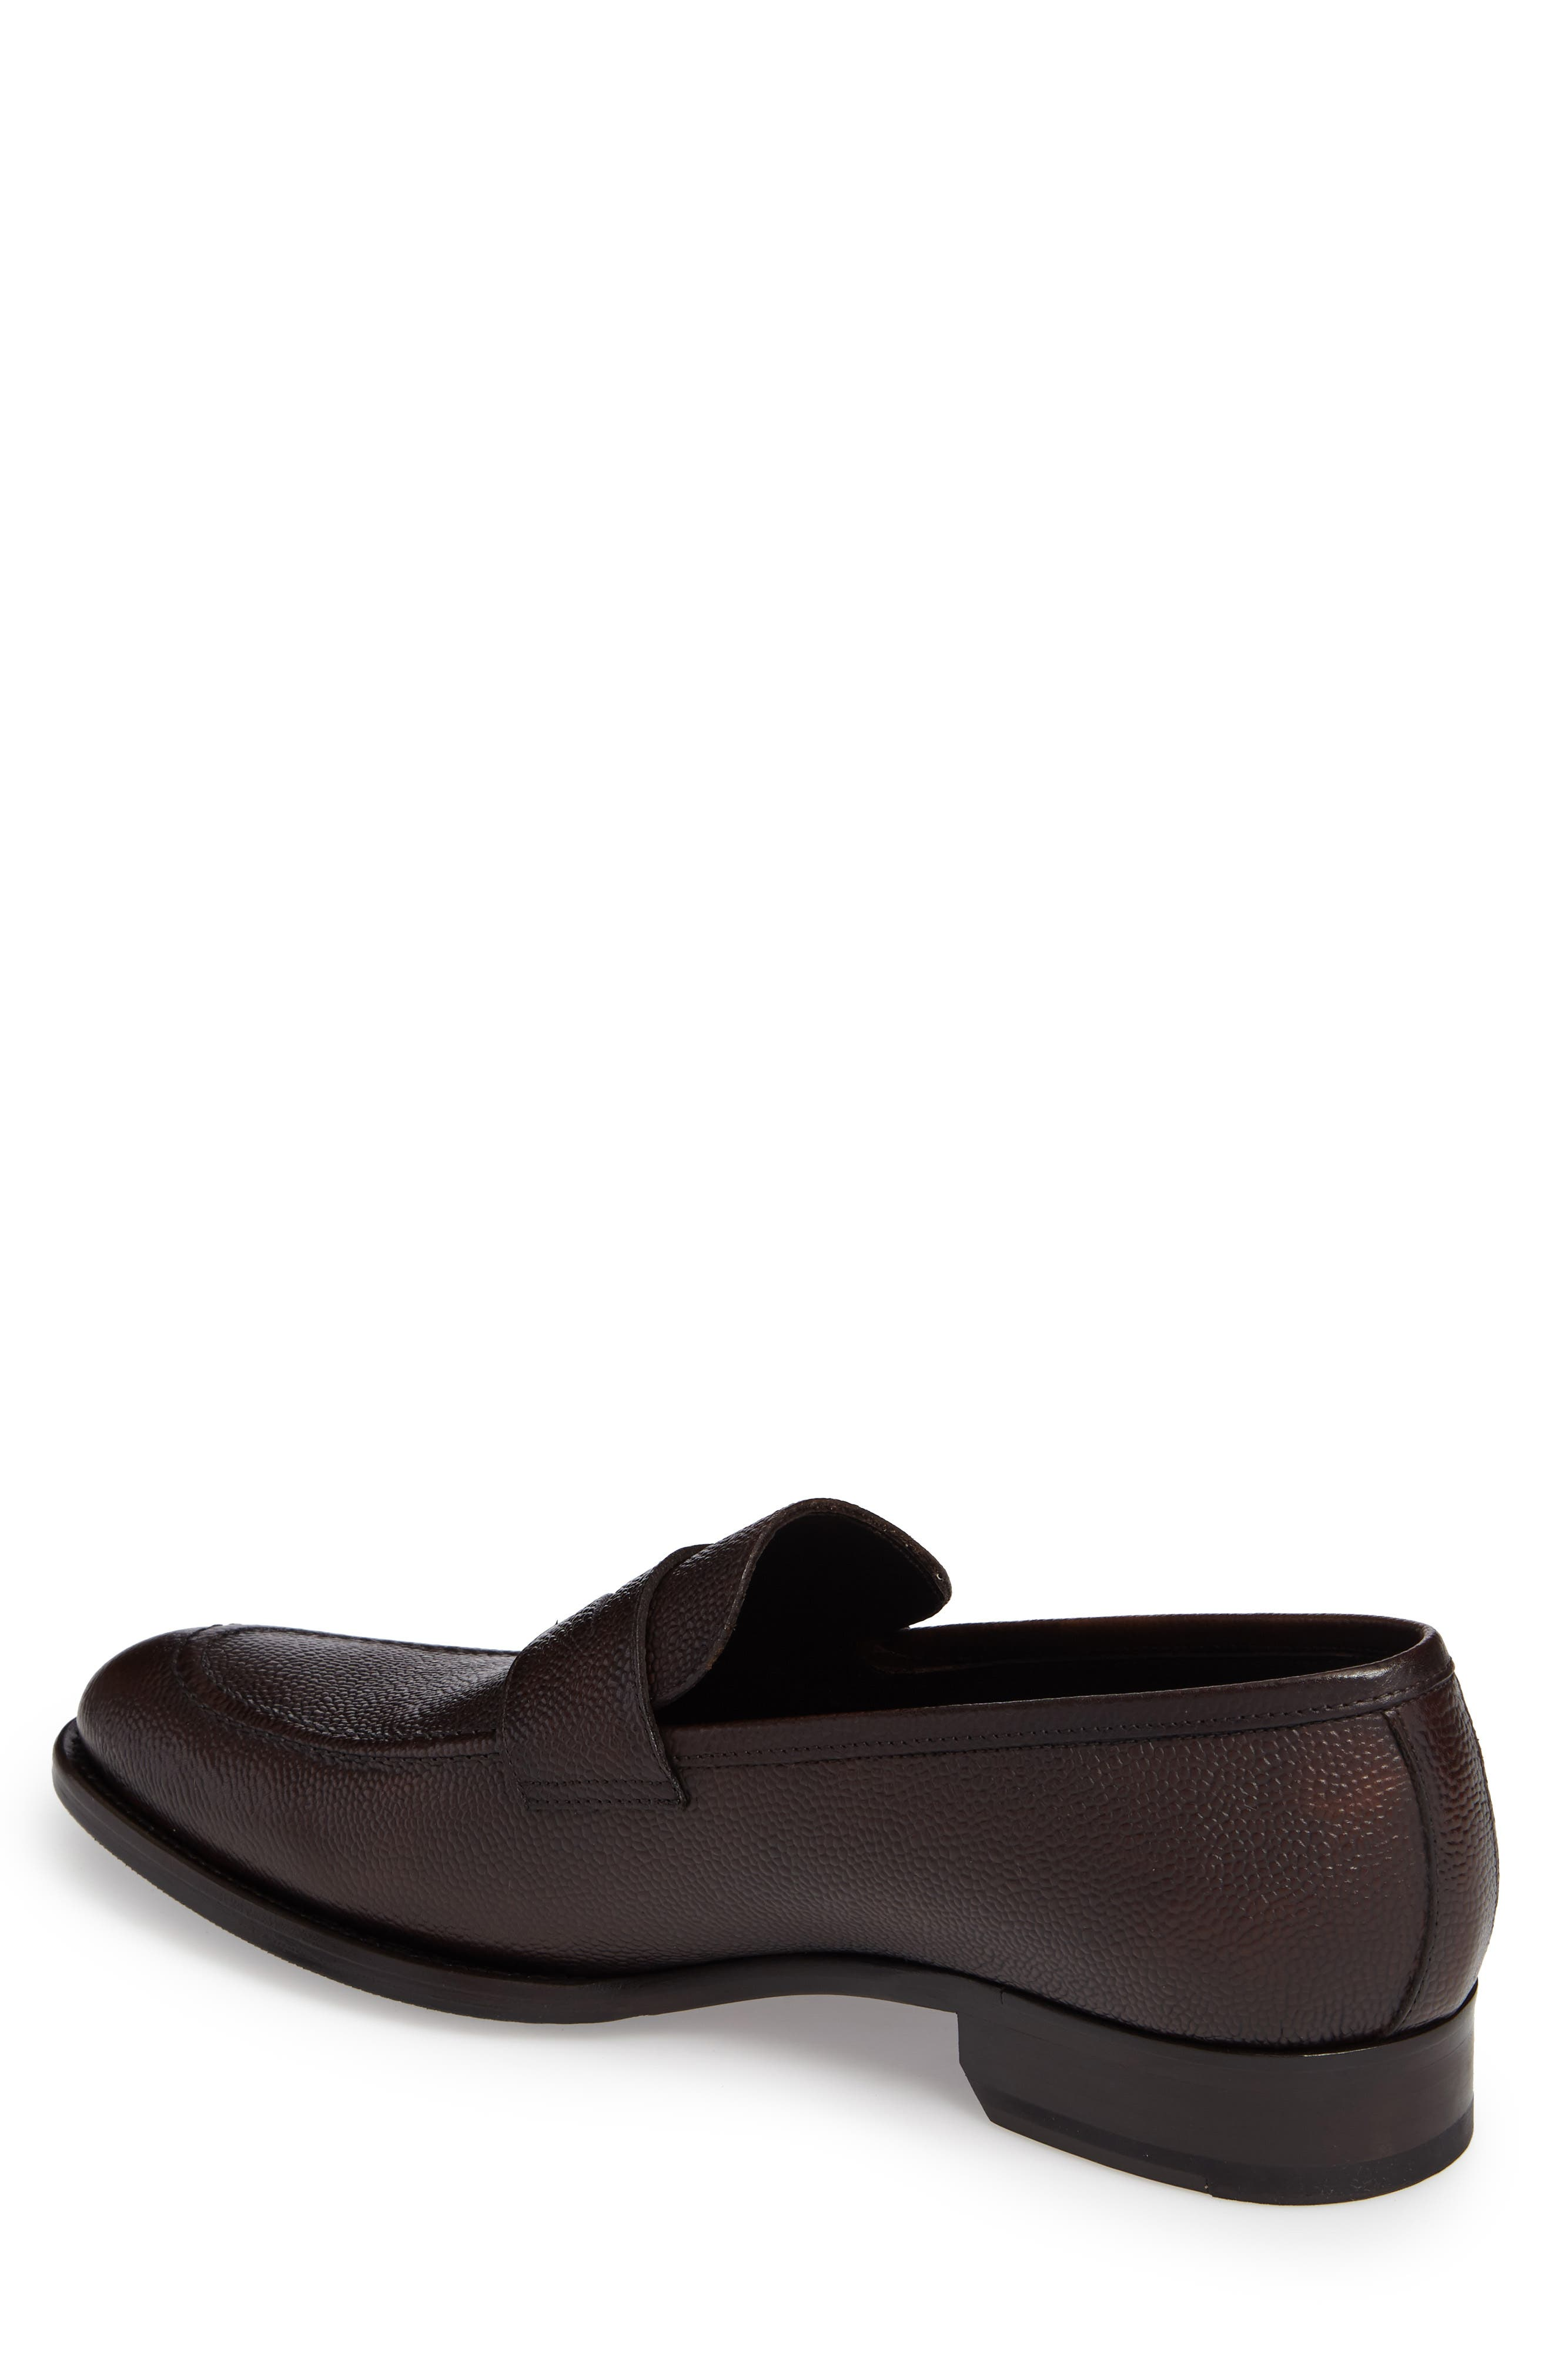 James Penny Loafer,                             Alternate thumbnail 2, color,                             Brown Leather